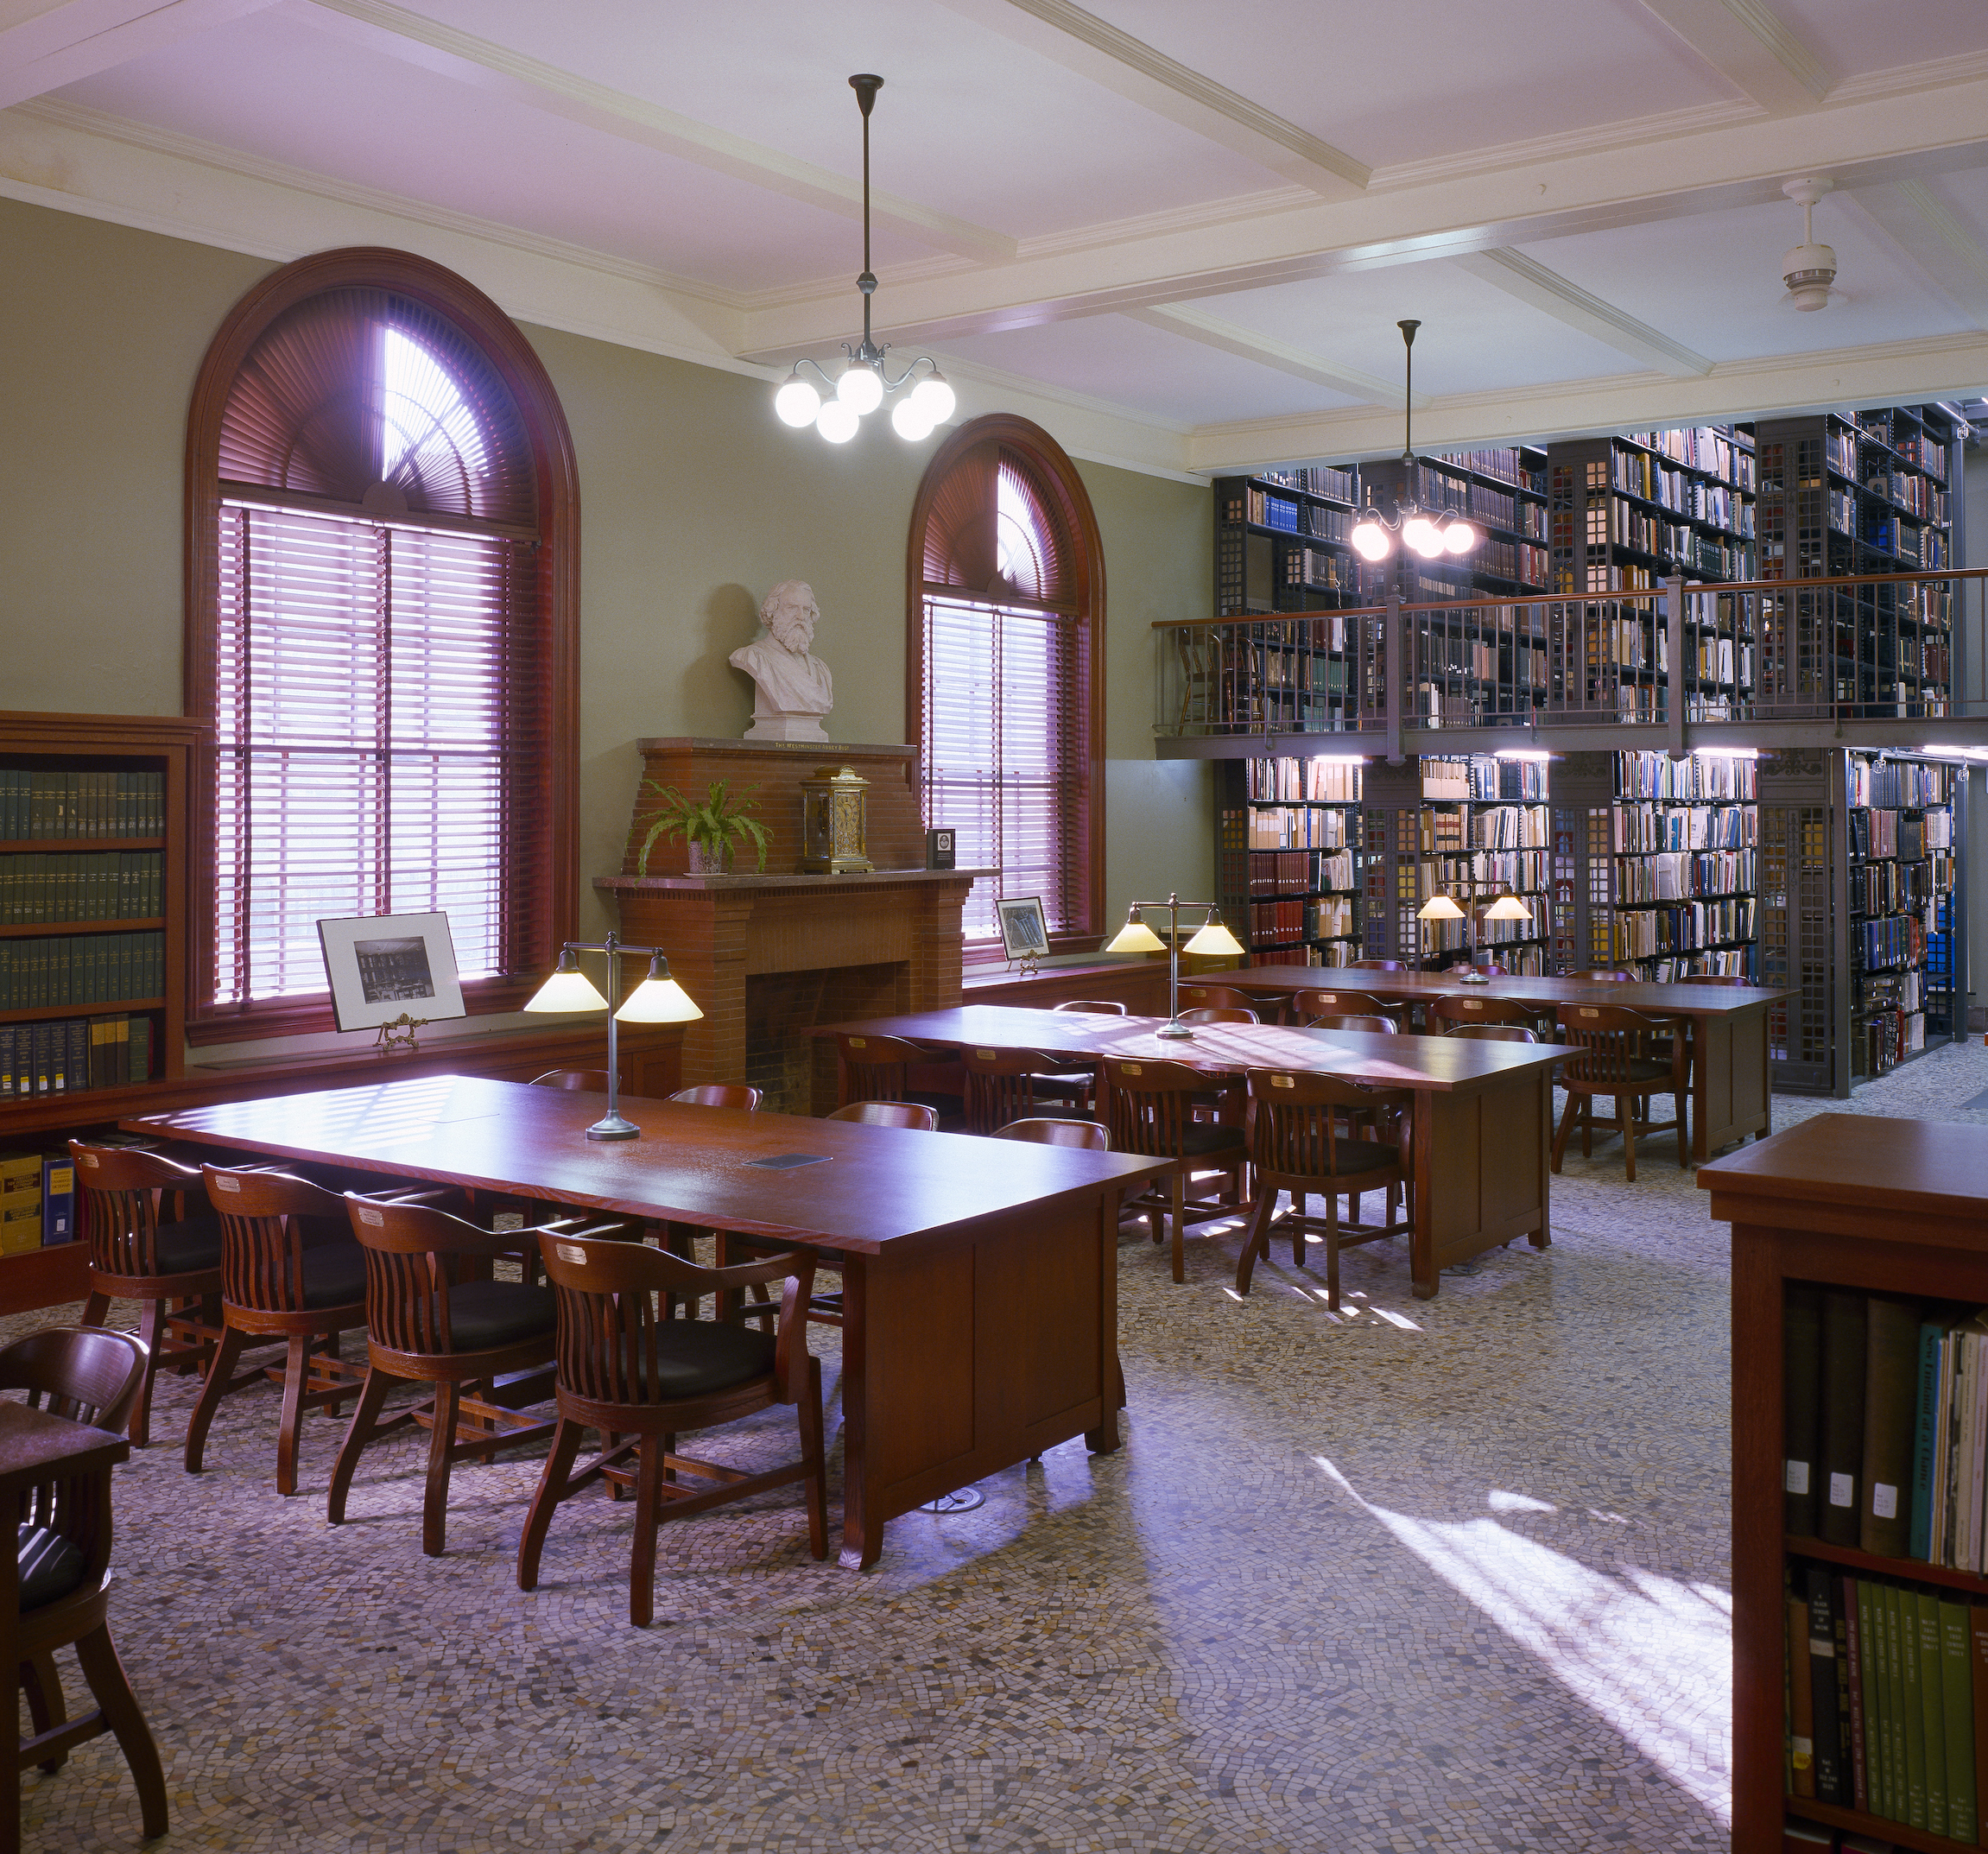 Maine Historical Society Reading Room cropped.jpg